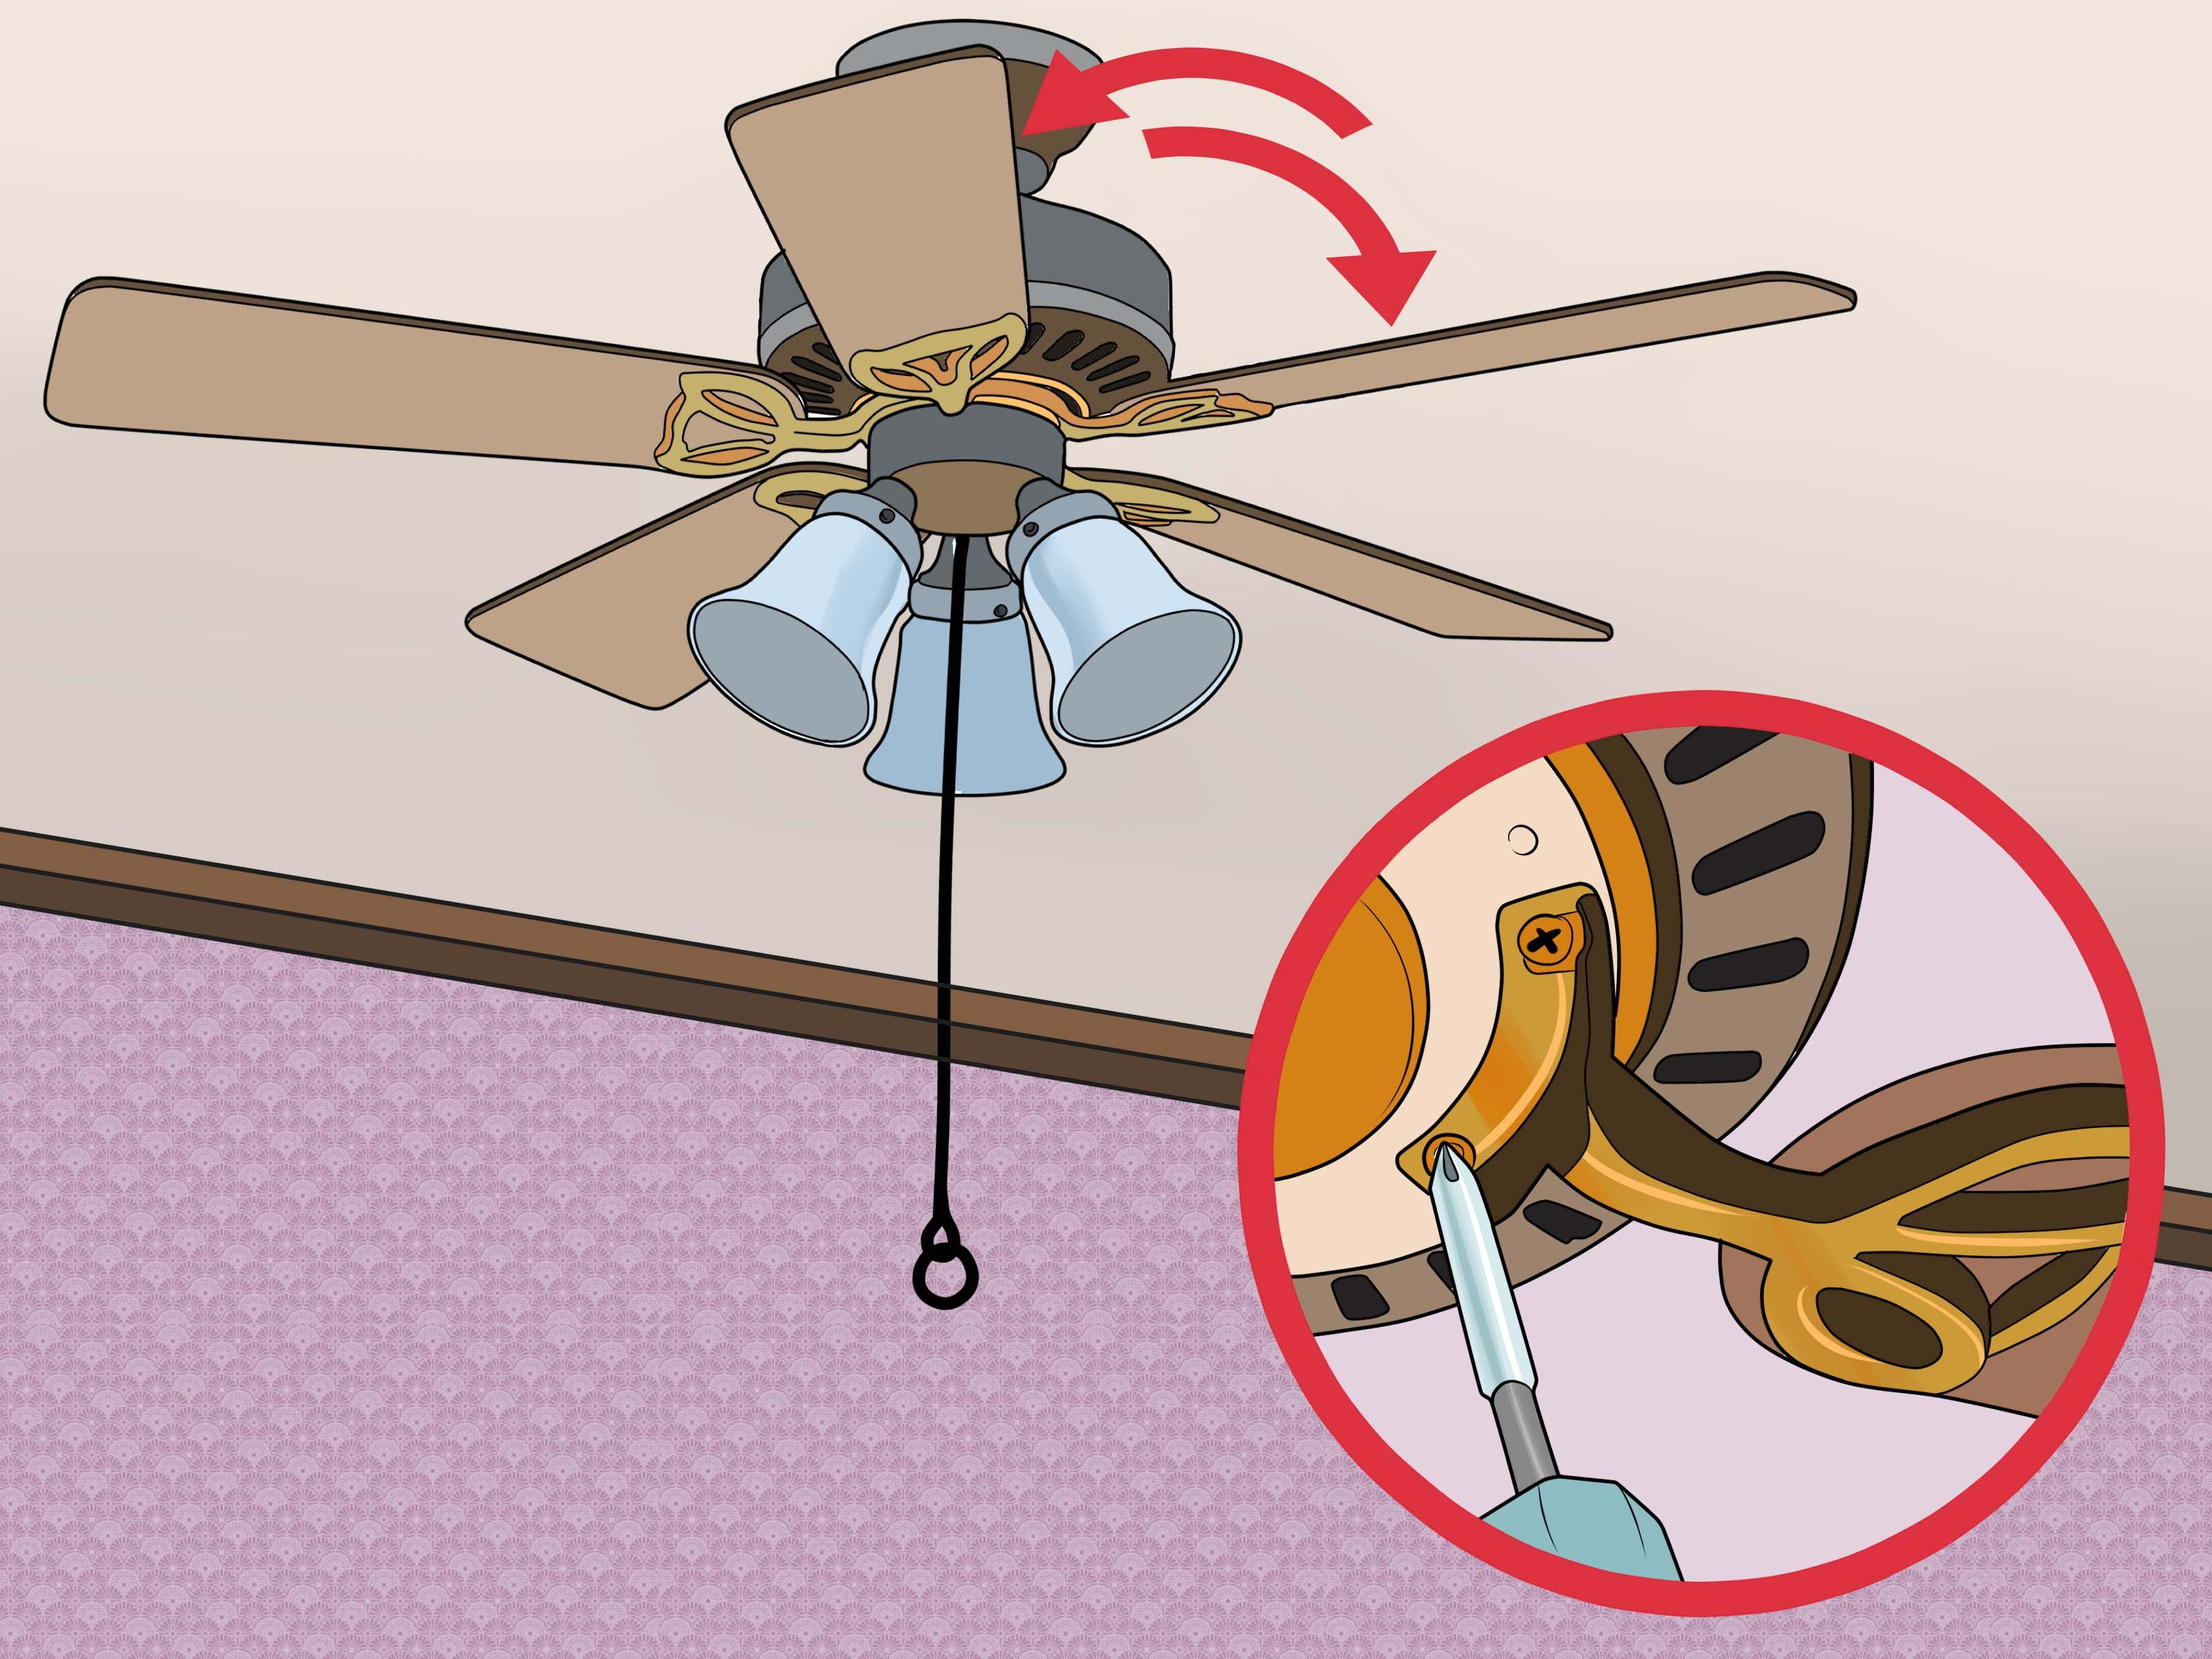 How To Fix A Wobbling Ceiling Fan Is Loud Unsightly And Dangerous If Not Dealt With Properly Luckily However You Do Need